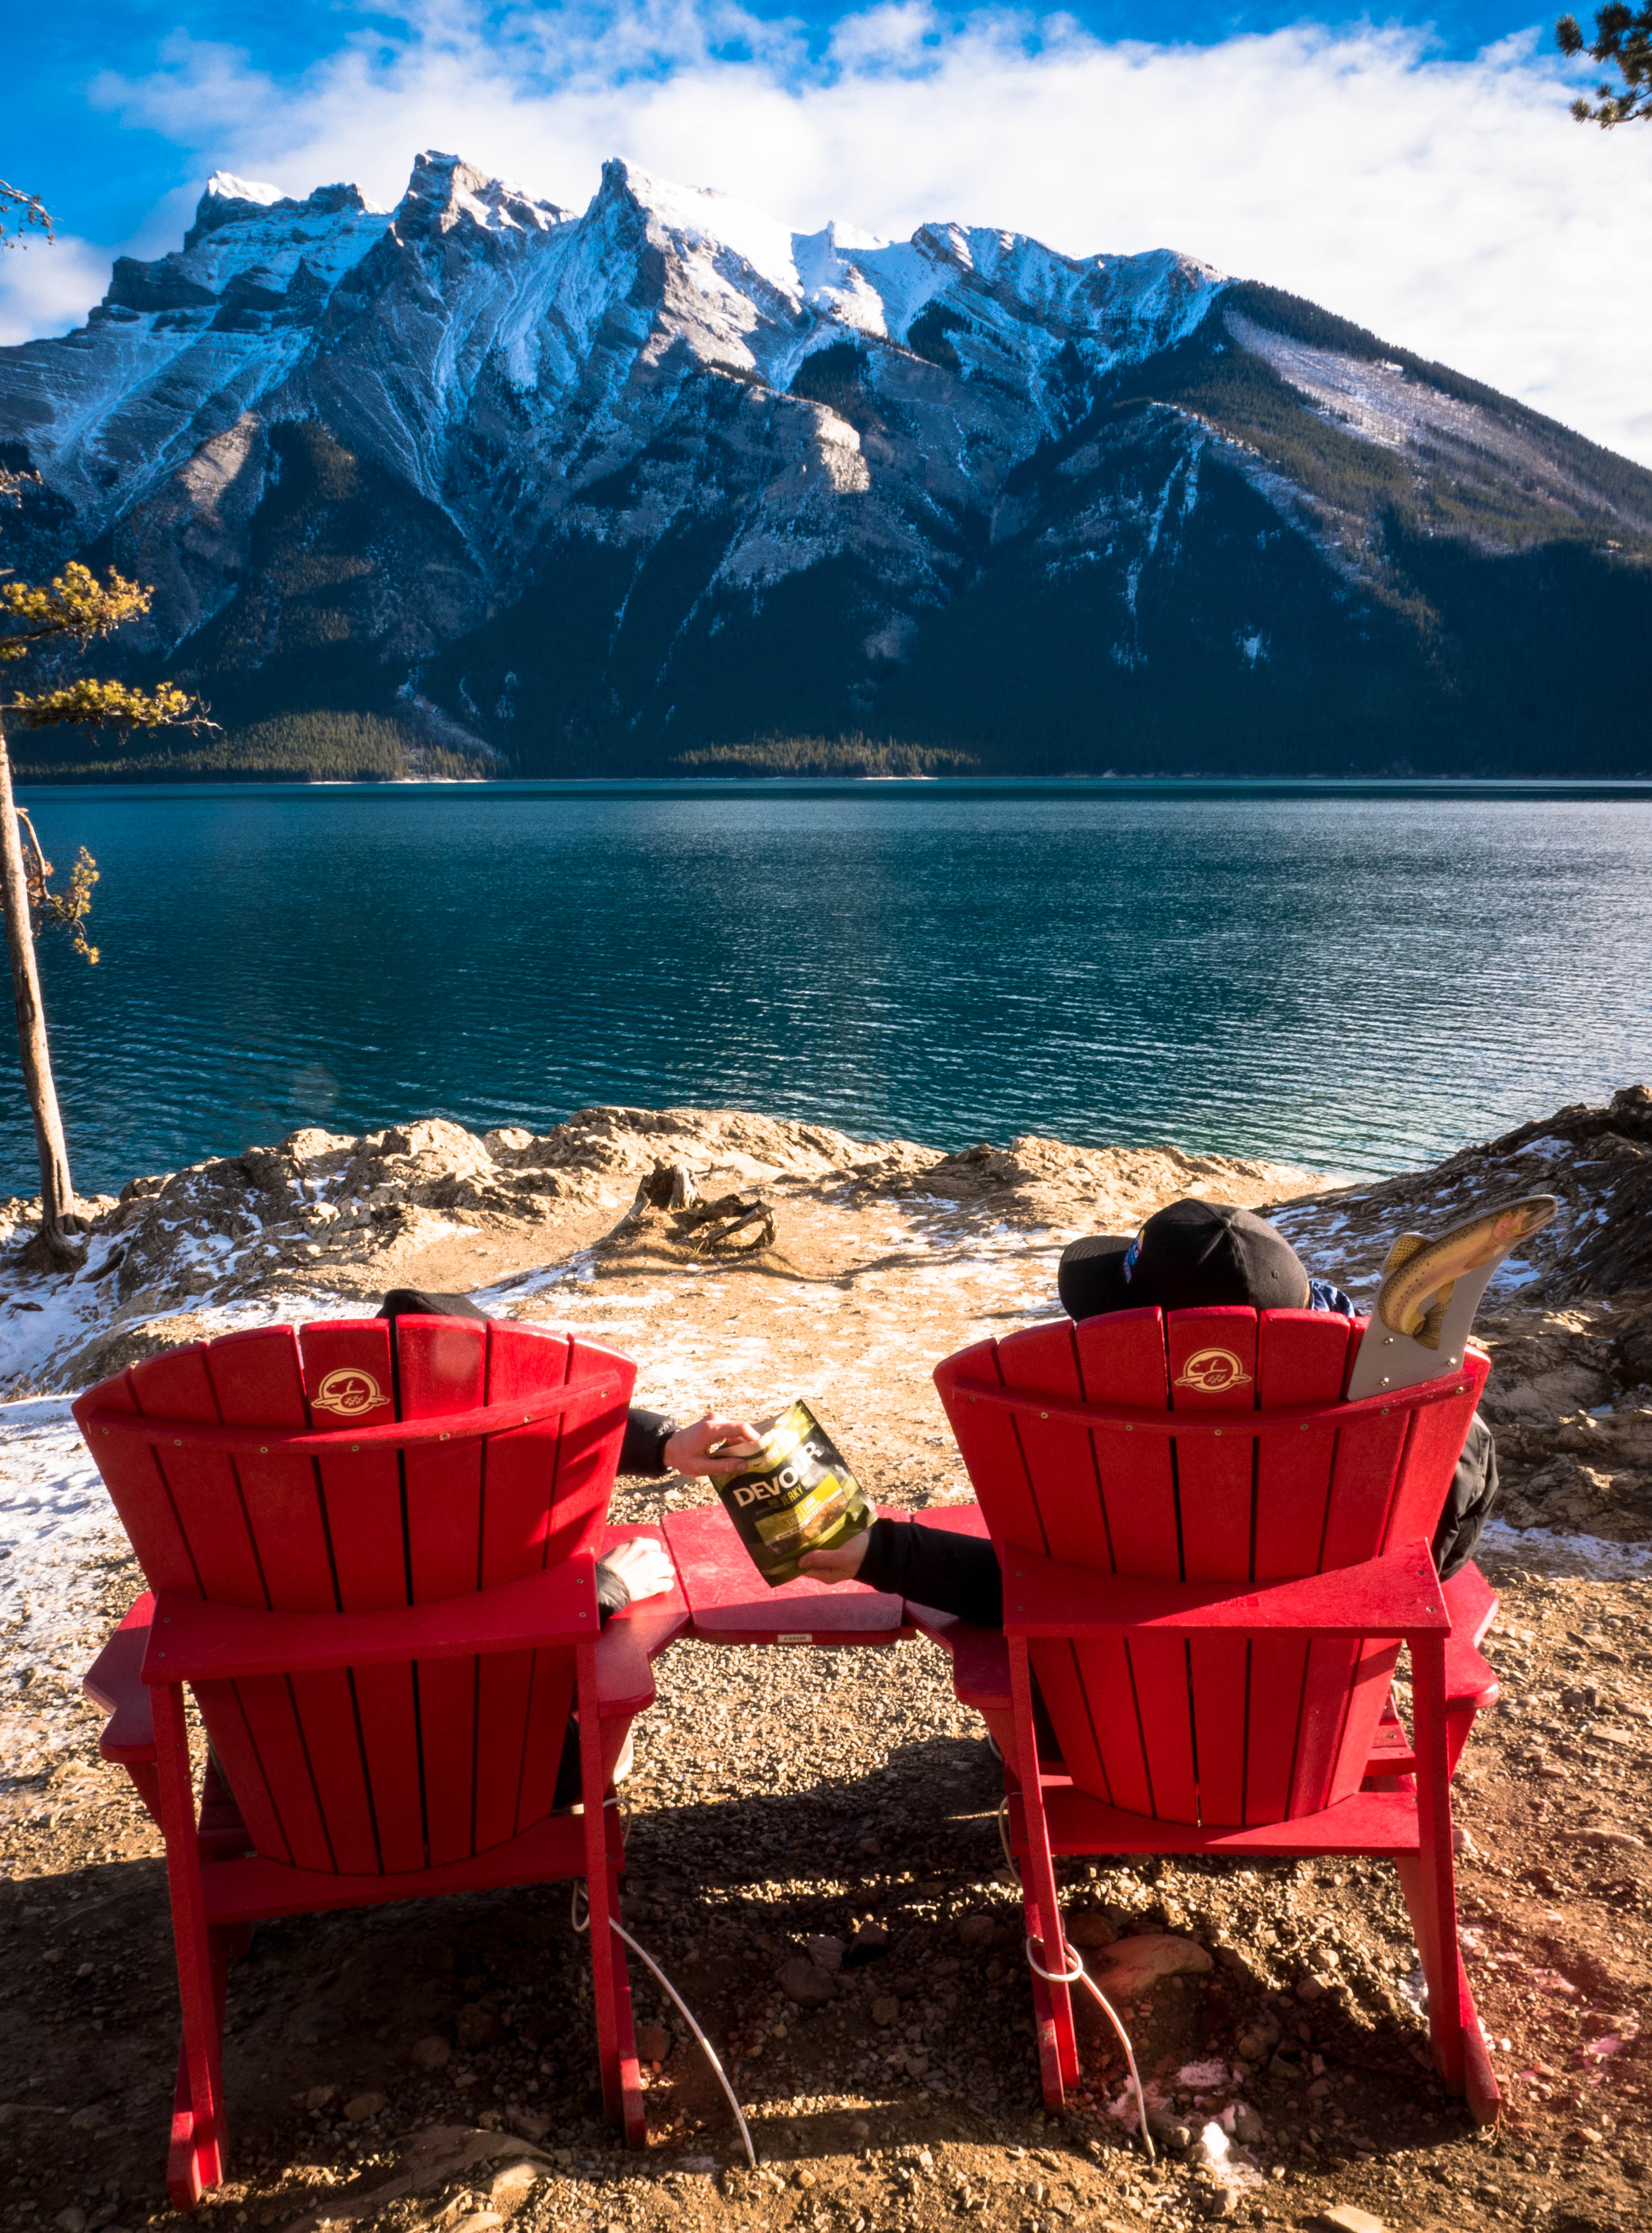 devour-cao-ab-landmark-banff-lake-minnewanka-with-red-chairs -sharing-jerky-3-edited & devour-cao-ab-landmark-banff-lake-minnewanka-with-red-chairs-sharing ...